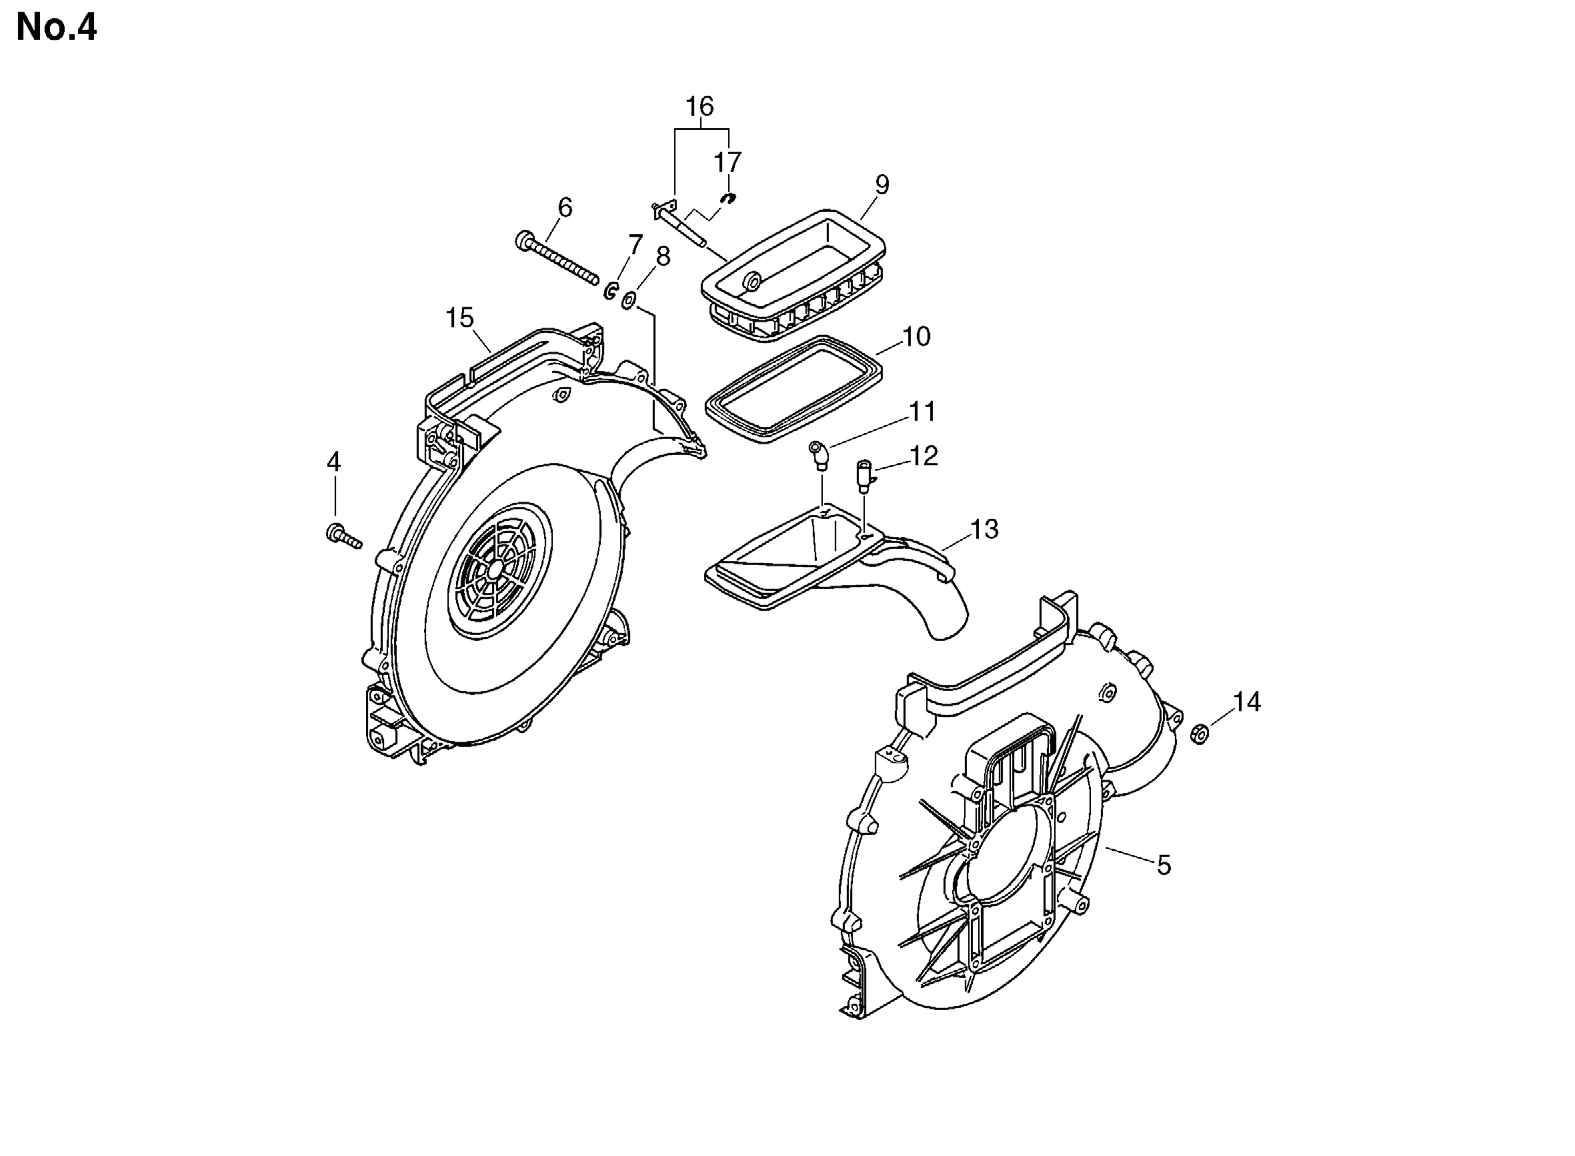 Group:Duster/Mist Blowers Model:DM-4610(SrNr 004334 and before) Section:Fan Case, Lower Tank Group:Duster/Mist Blowers Model:DM-4610(SrNr 004334 and before) Section:Harness 1 300010-07310 1 FRAME,